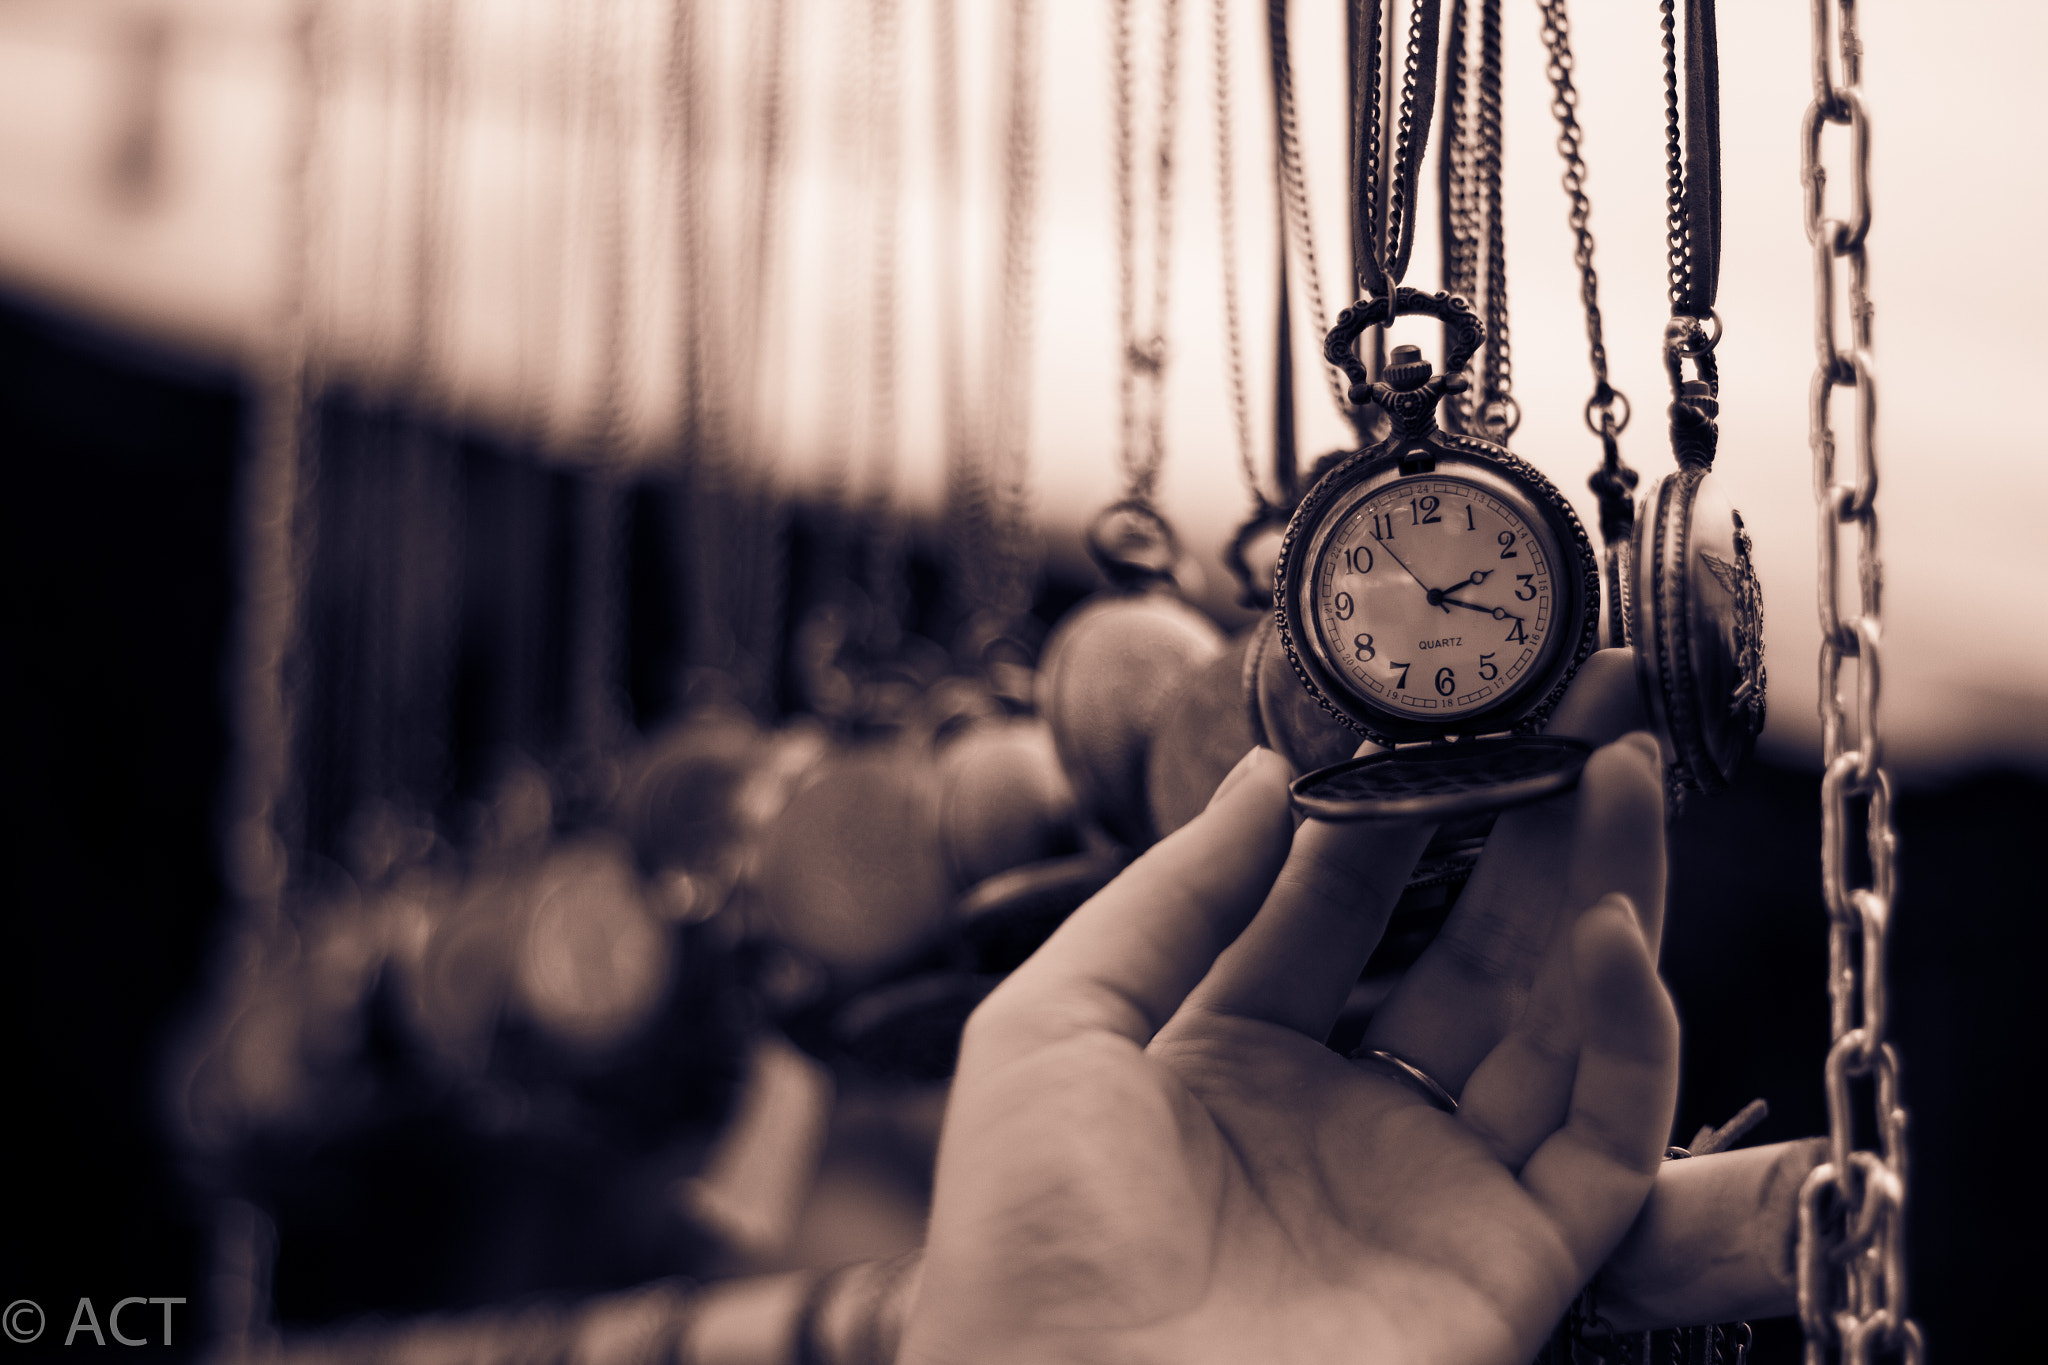 Photograph Timepieces by Aimee C. Teesdale on 500px